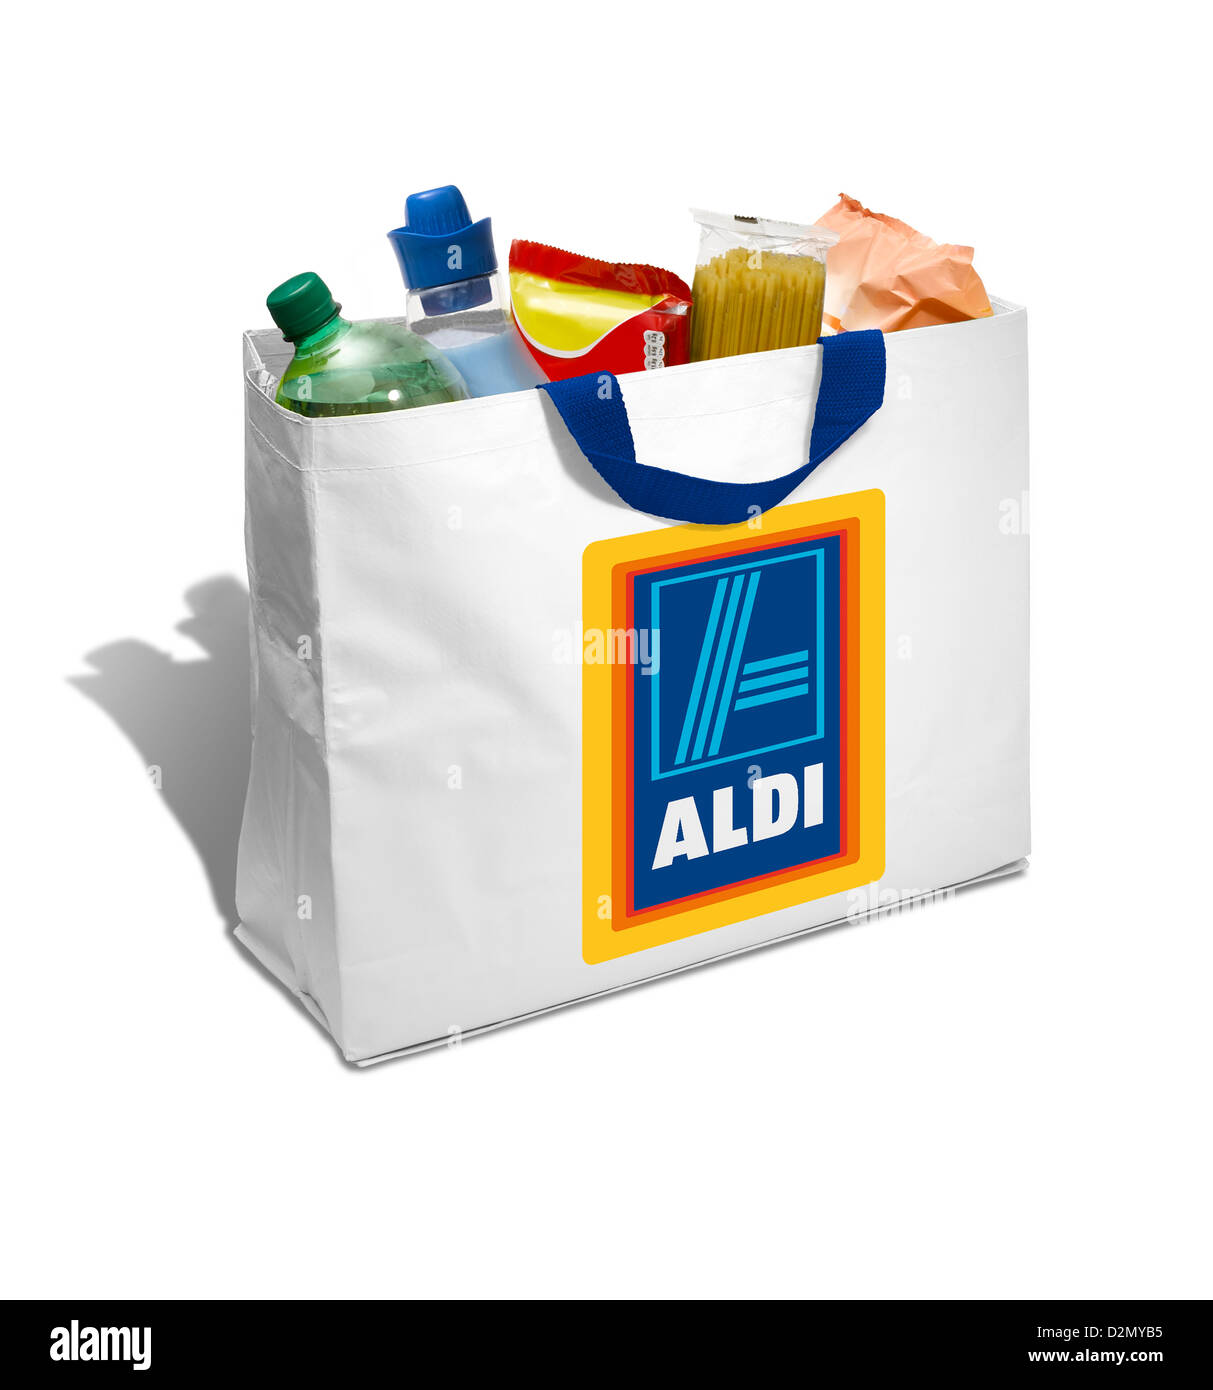 A white Aldi shopping bag full of groceries on a white background - Stock Image